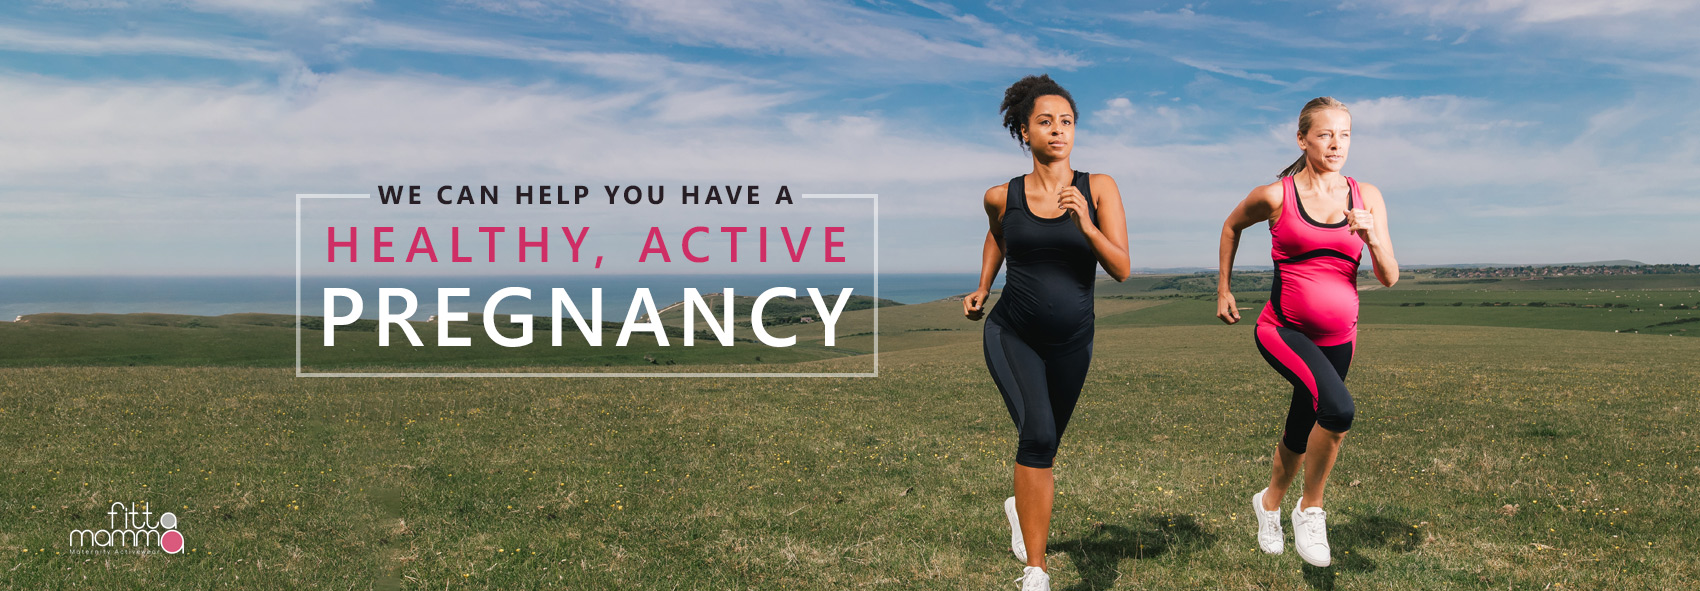 Active-Pregnancy-advice-header